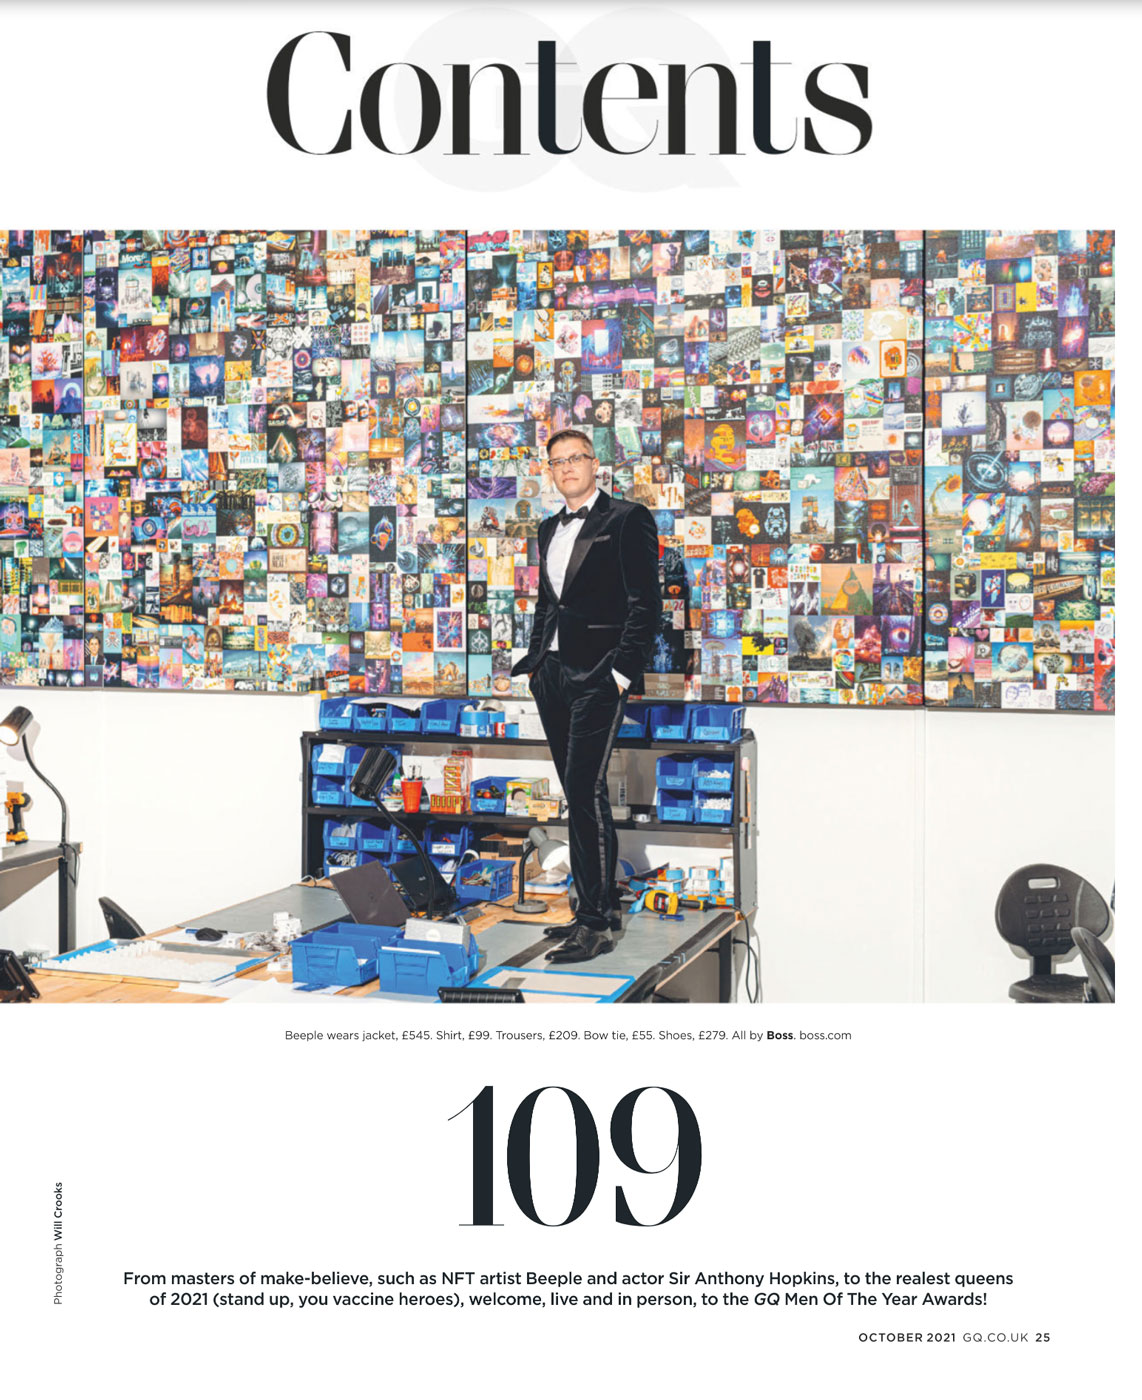 Tear sheet of British GQ contents page featuring artist of the year Beeple shot by Will Crooks